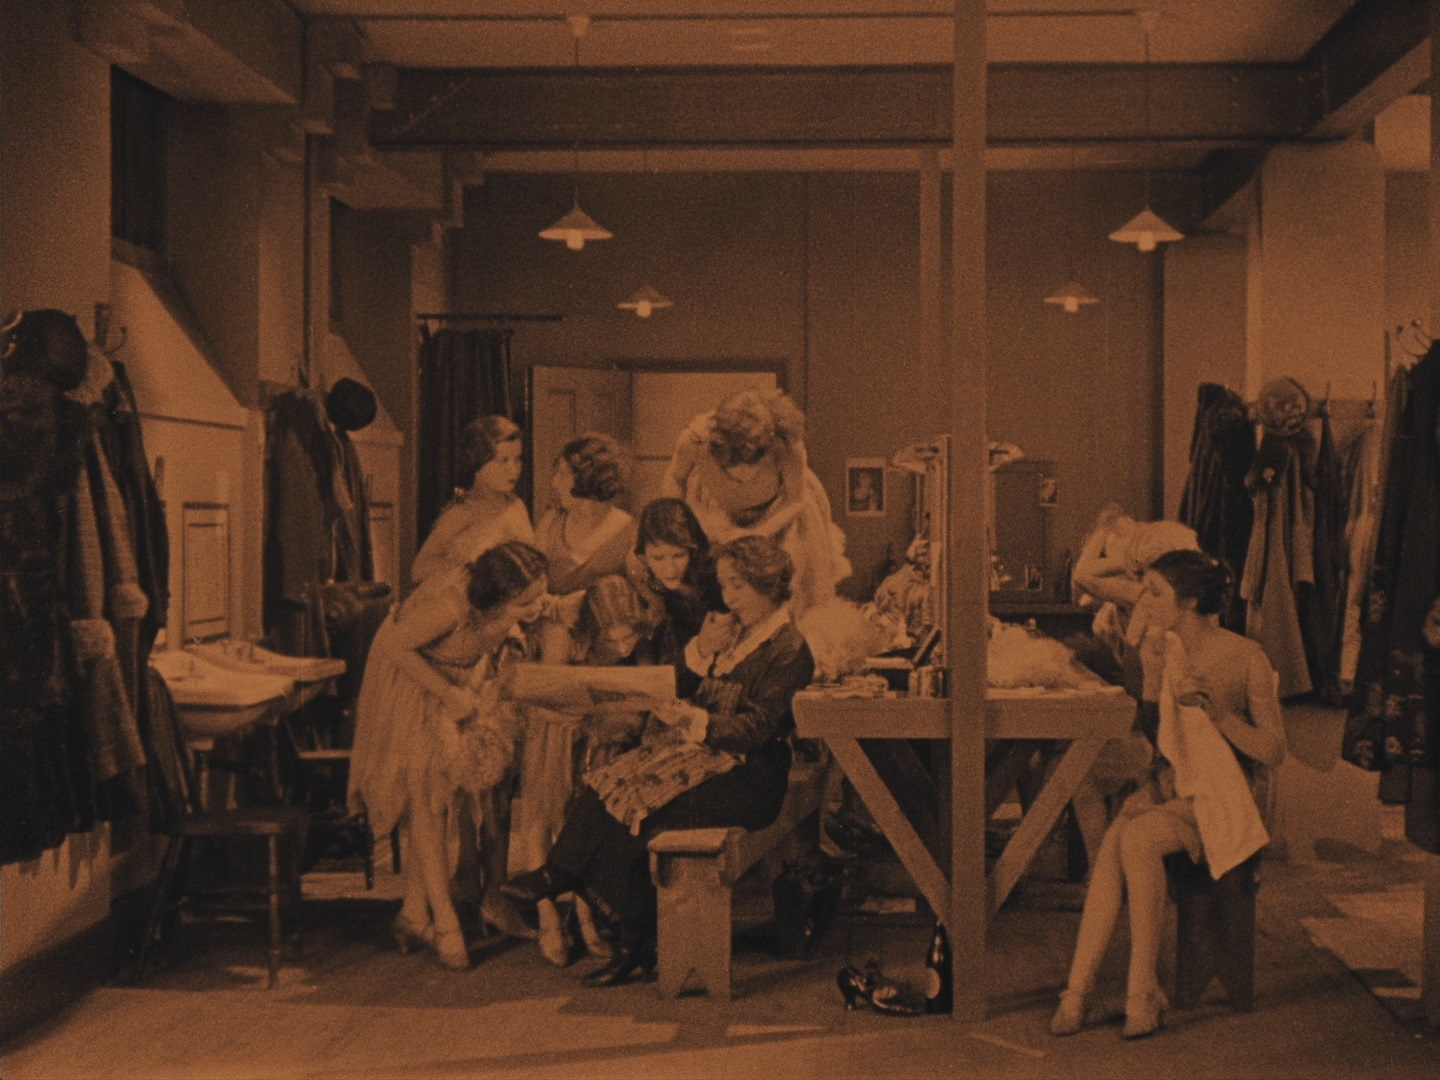 The Lodger (1926, dir. Alfred Hitchcock) US Criterion Blu-ray screenshot, showgirls